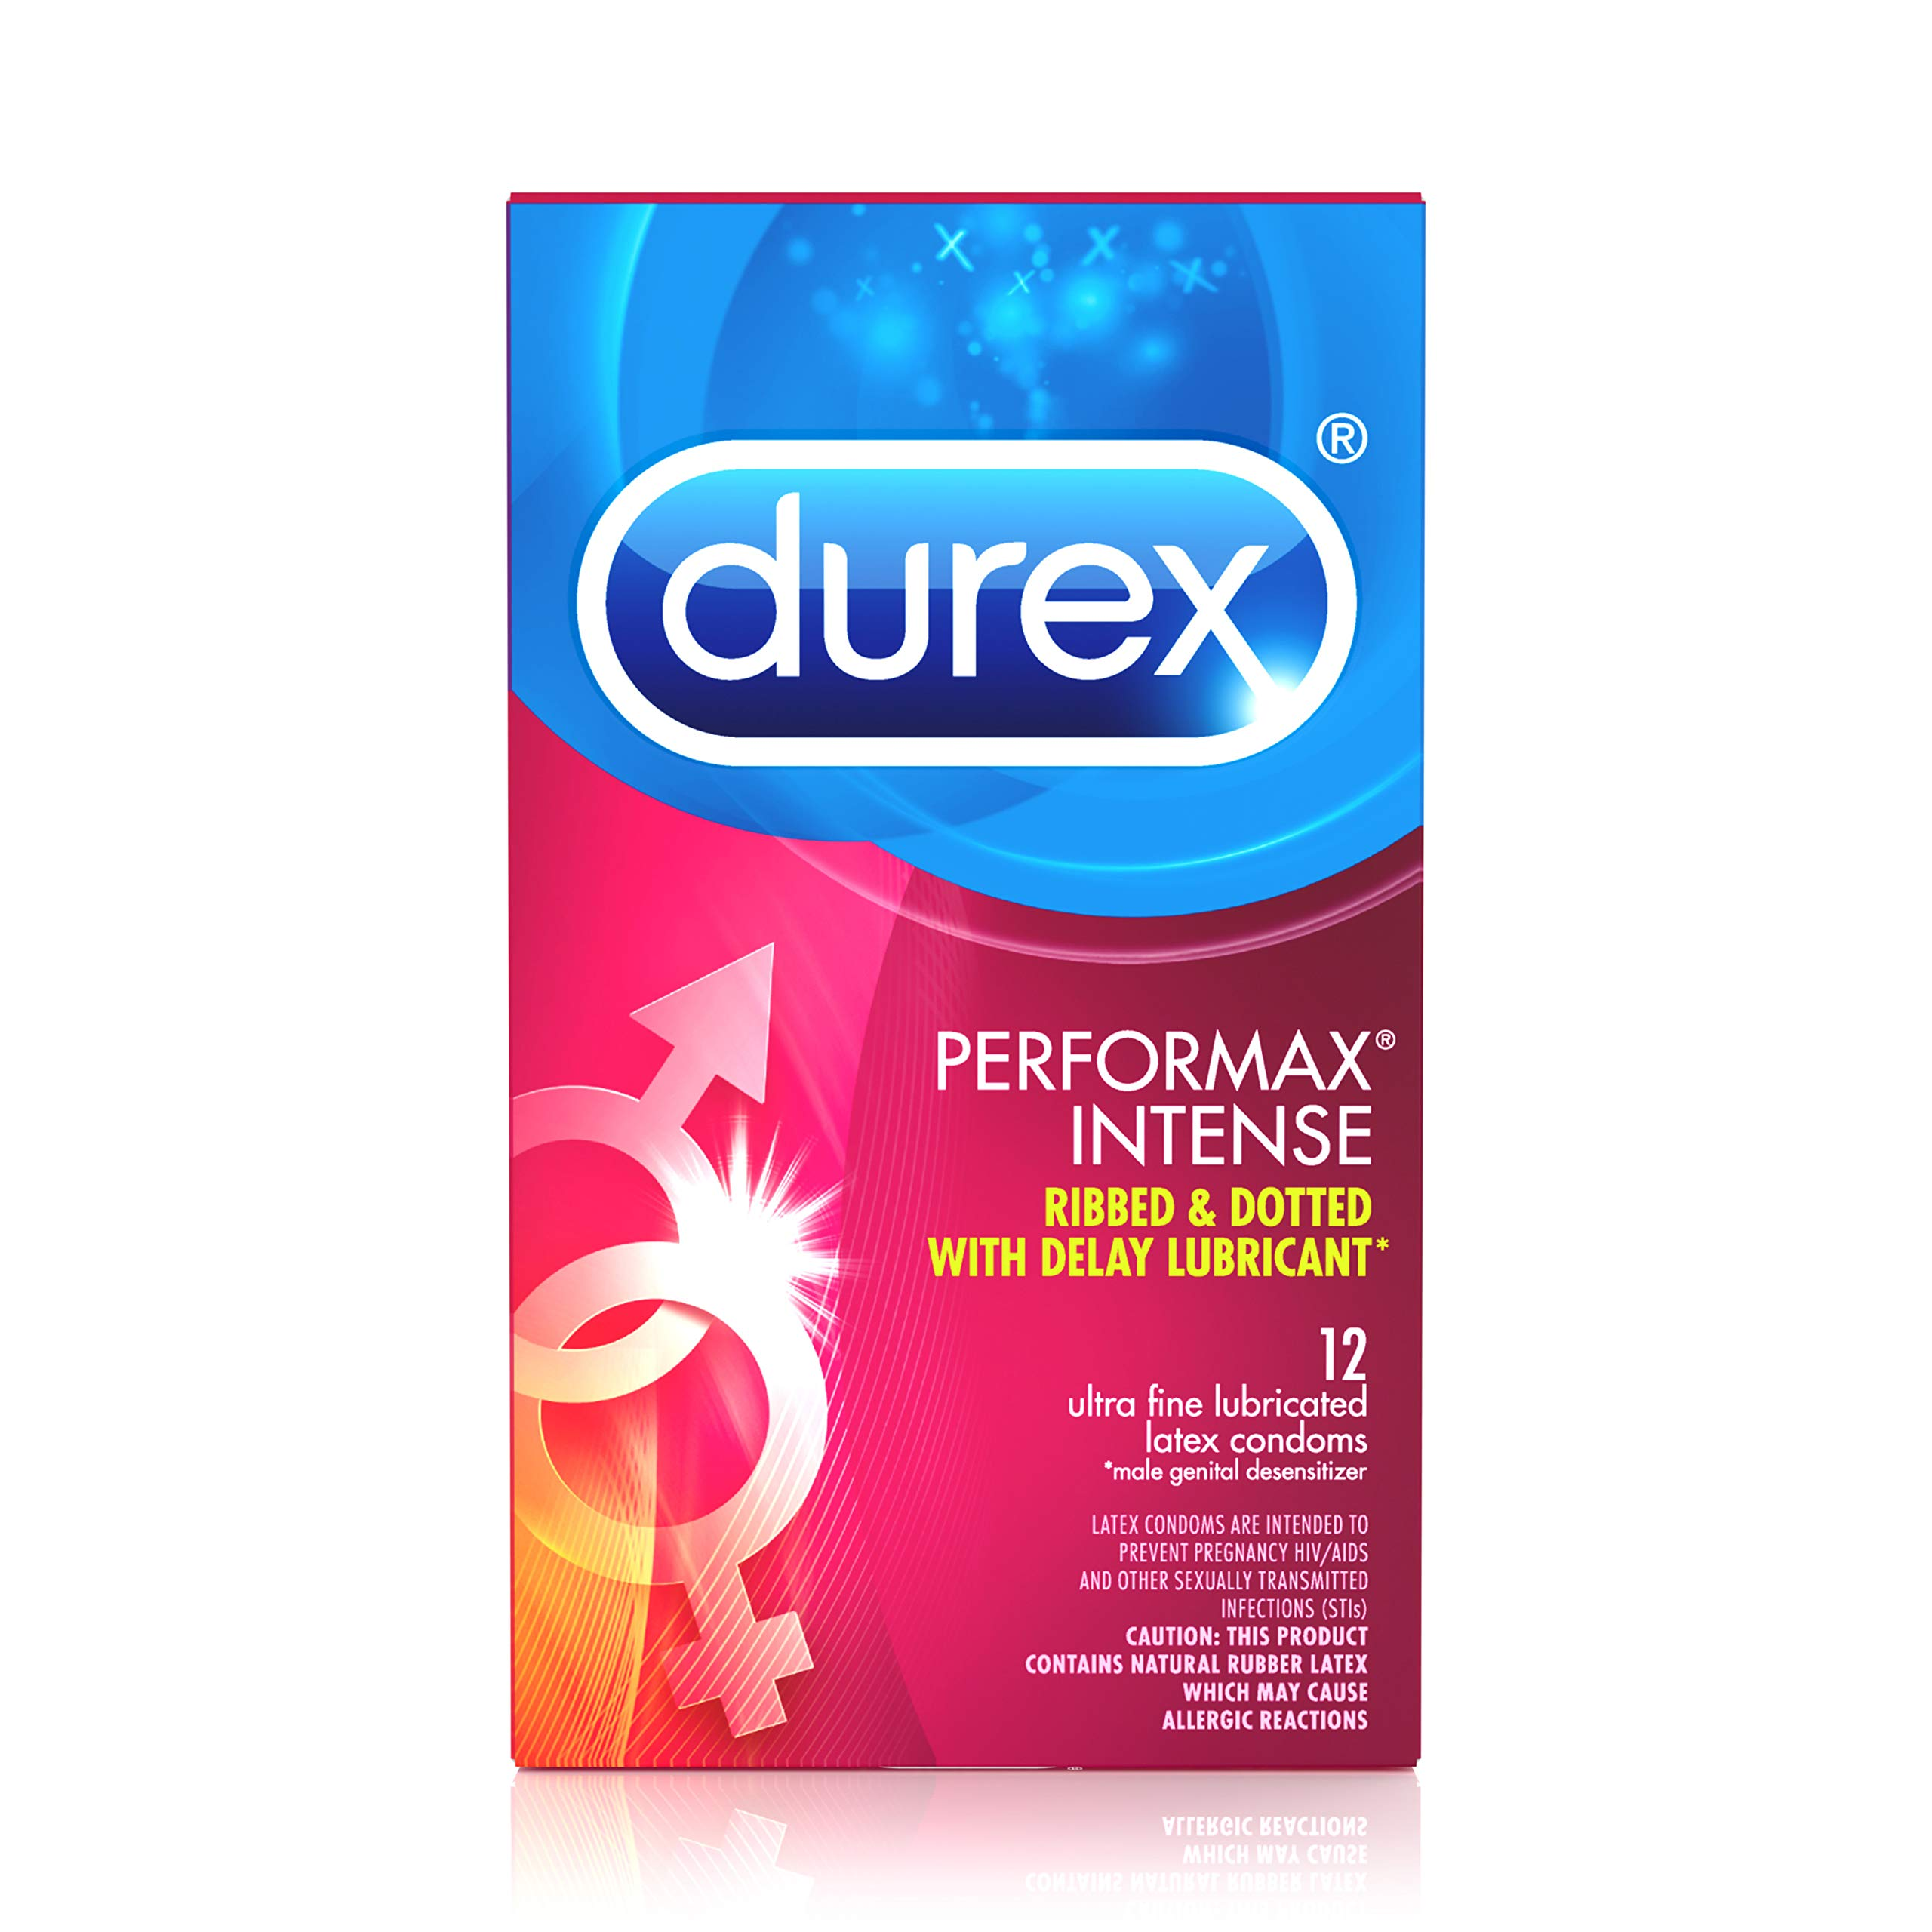 Condoms, Ultra Fine, Ribbed, Dotted with Delay Lubricant, Durex Performax Intense Natural Rubber Latex Condoms, 12 Count, Contains Desensitizing Lube for Men, FSA & HSA Eligible